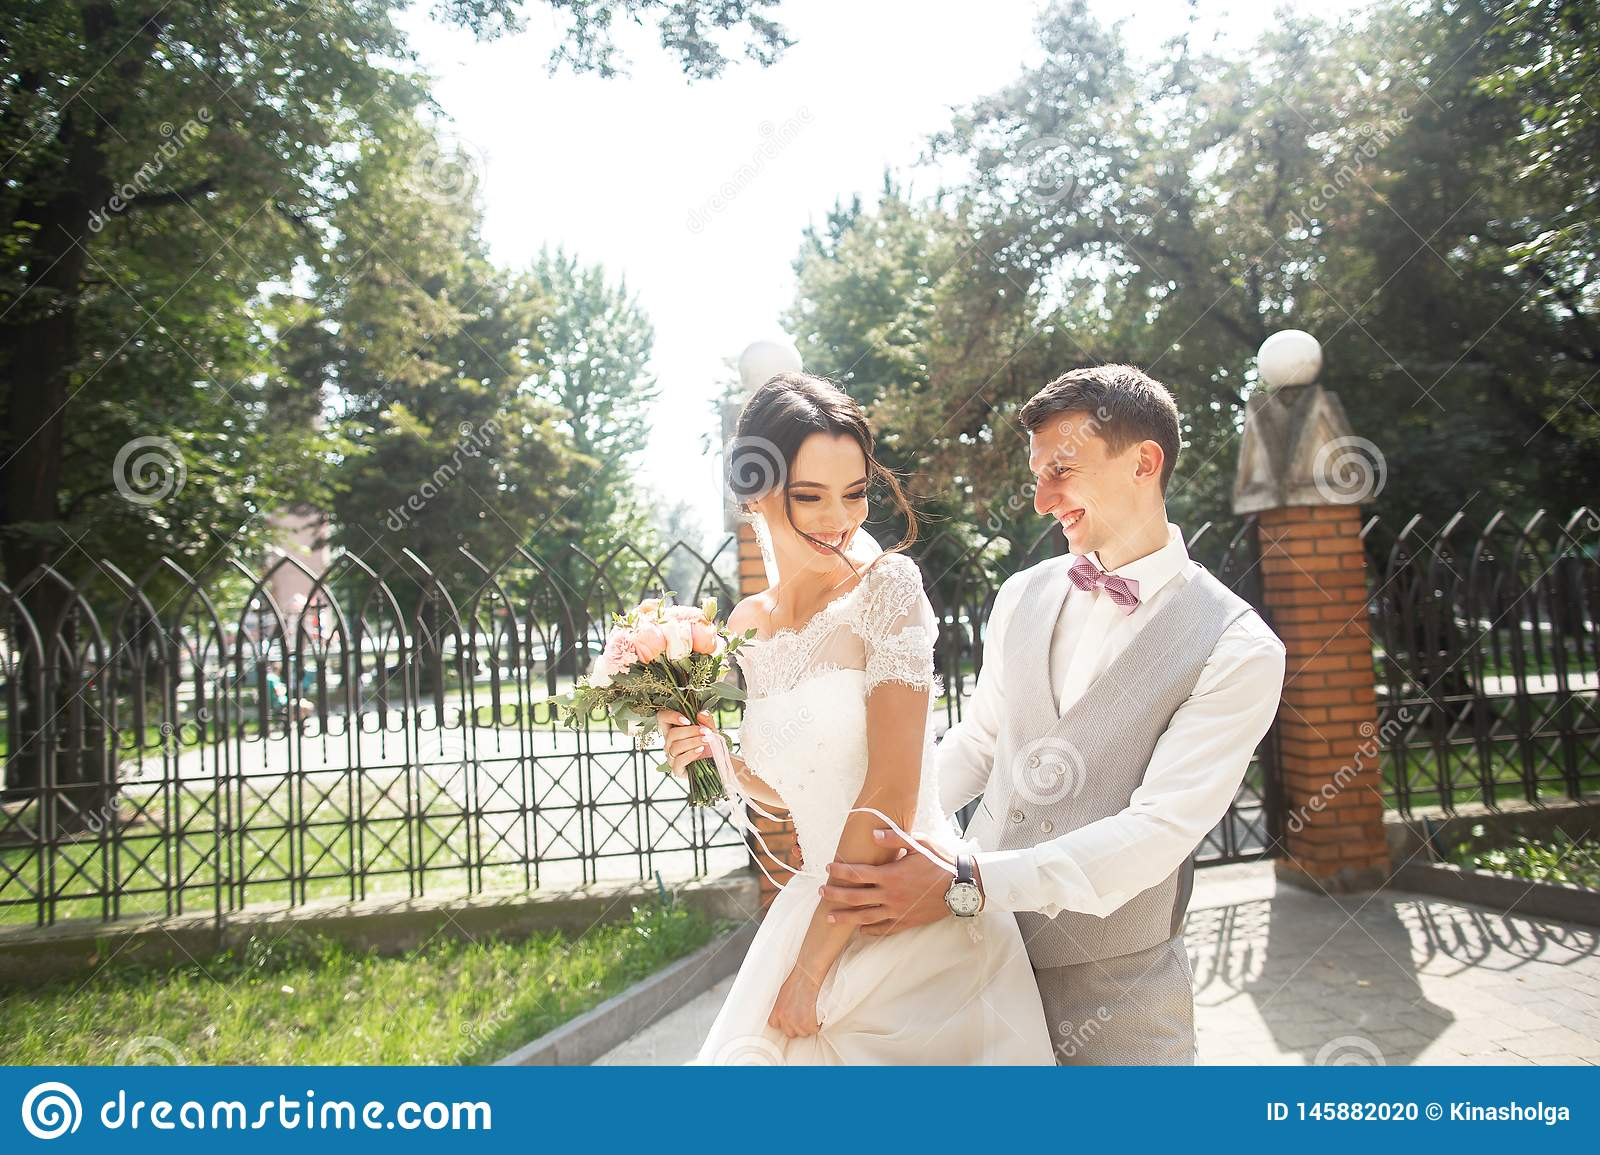 Bride and groom at wedding Day walking in a beautiful park, smiling end enjoying each other